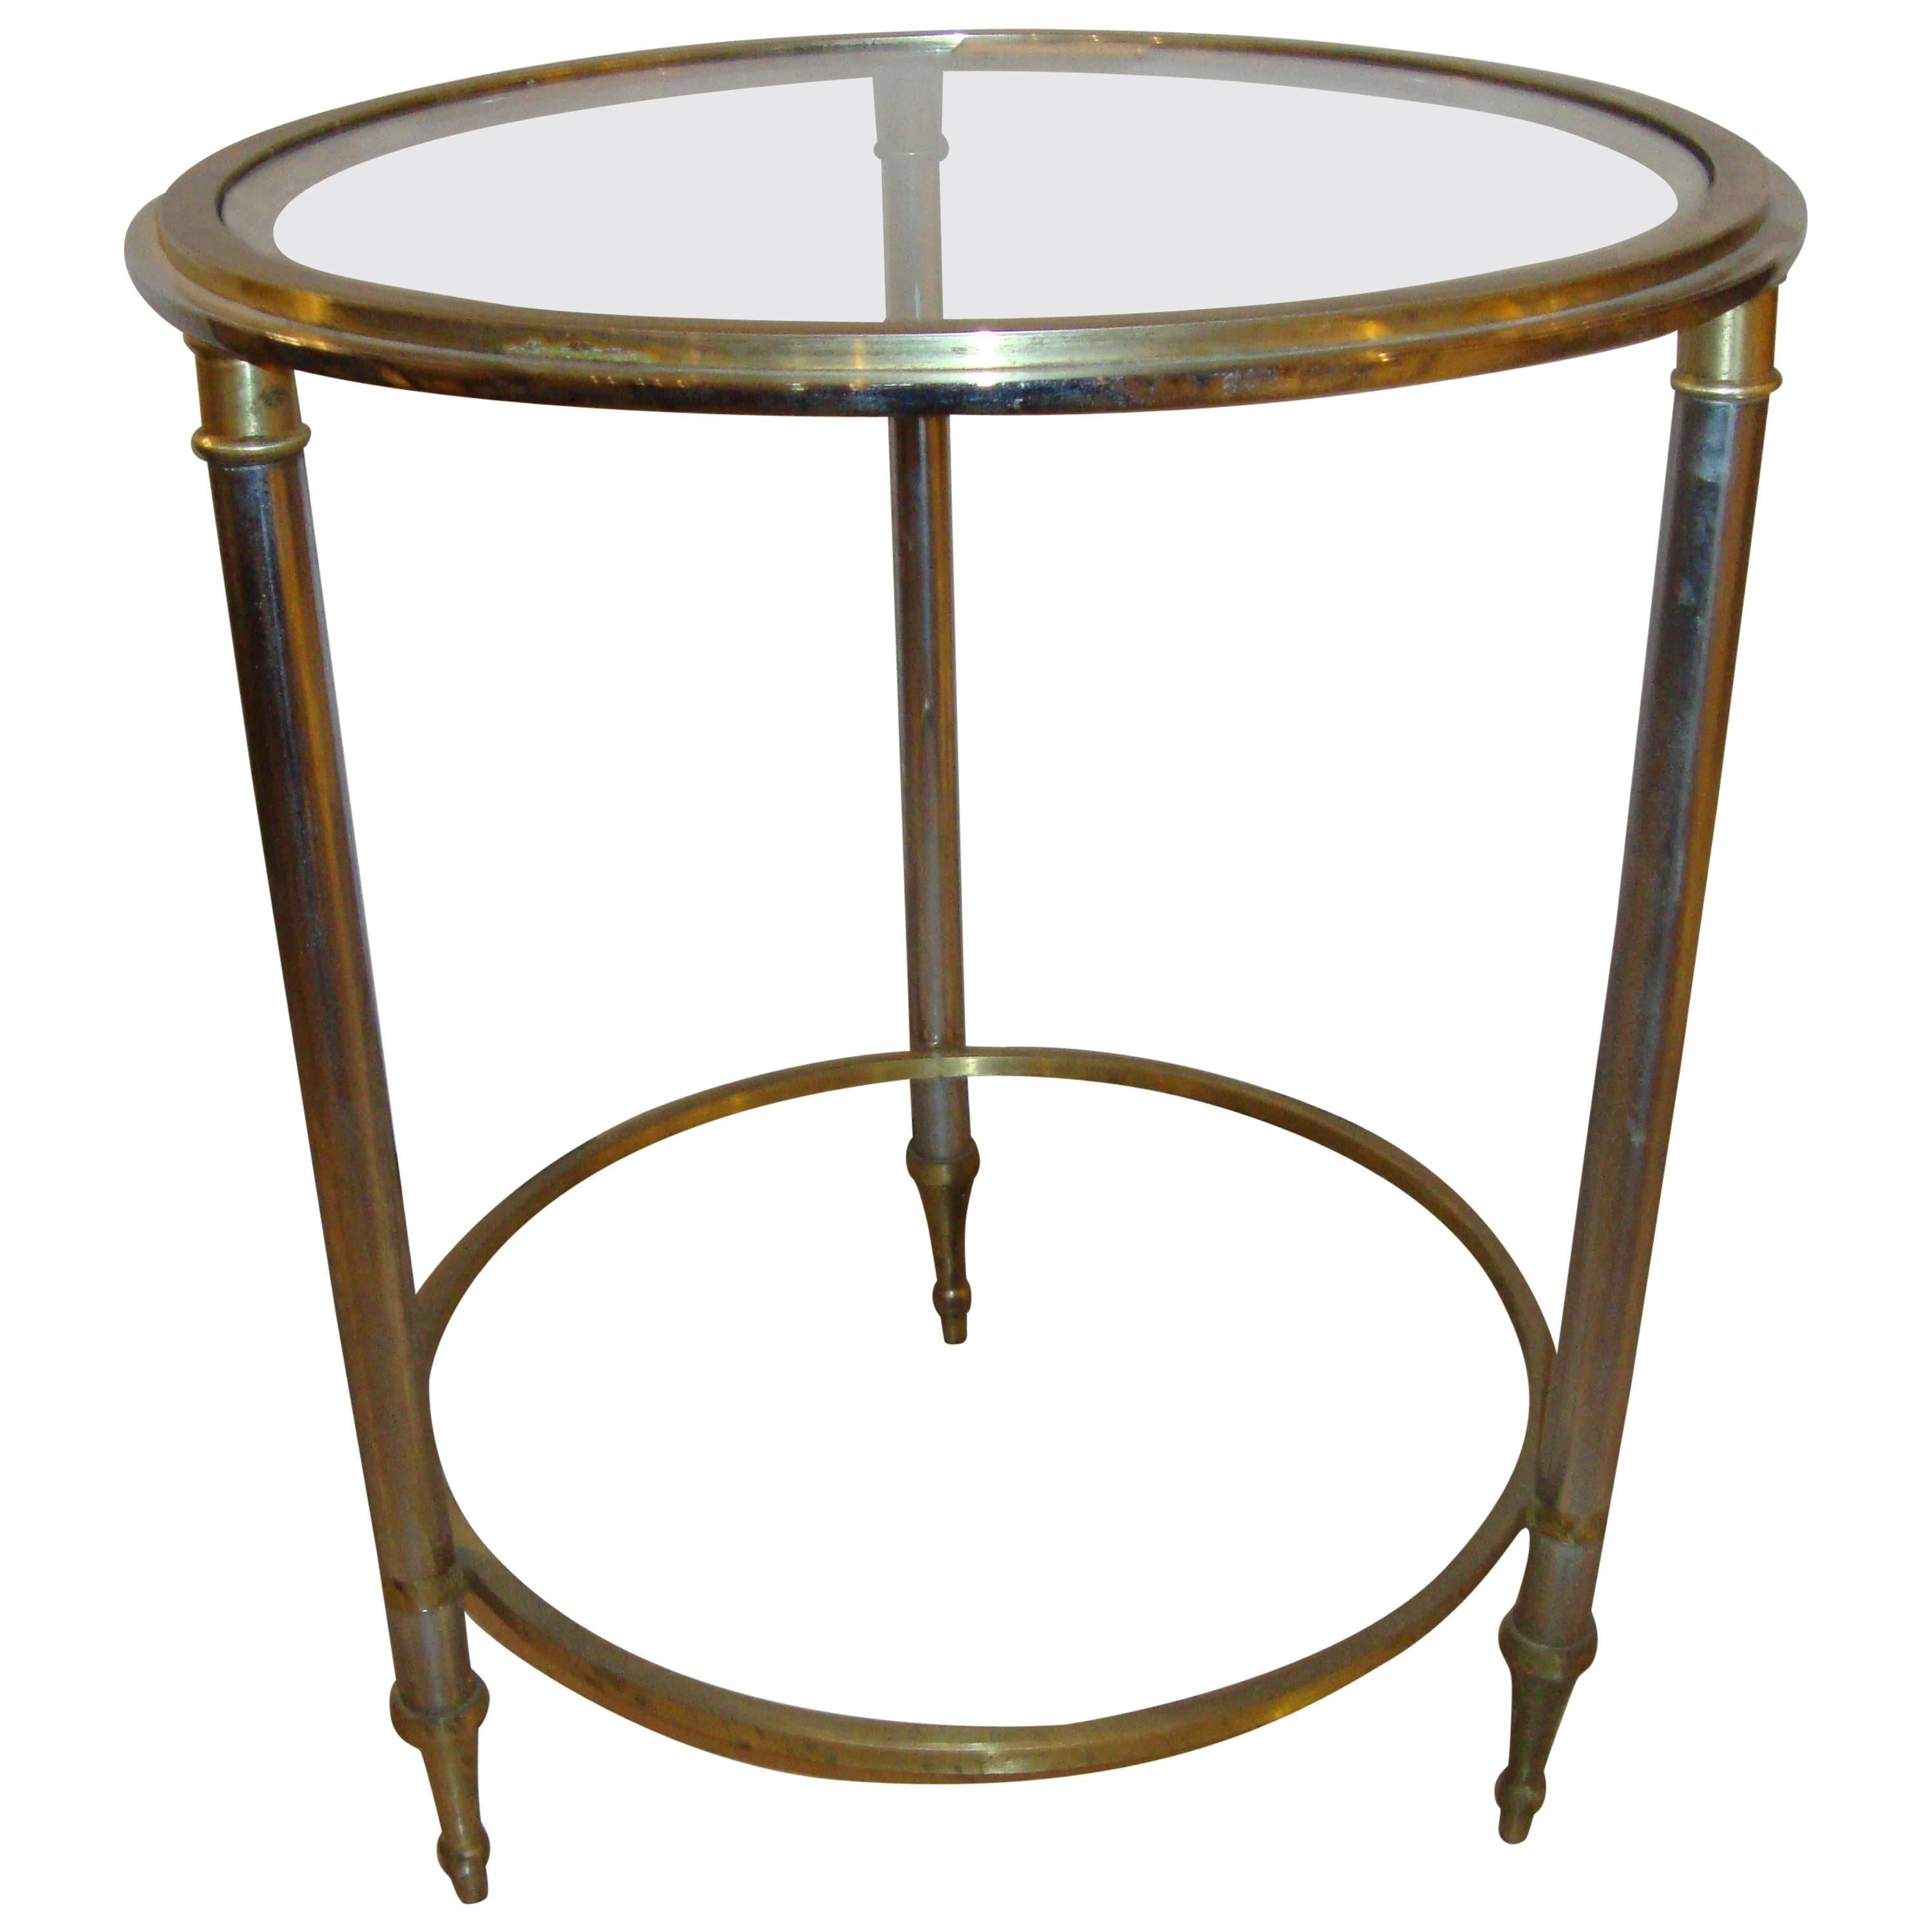 Hollywood Regency Style Bronze Bamboo Bouilliotte Glass Top End Or Side Table